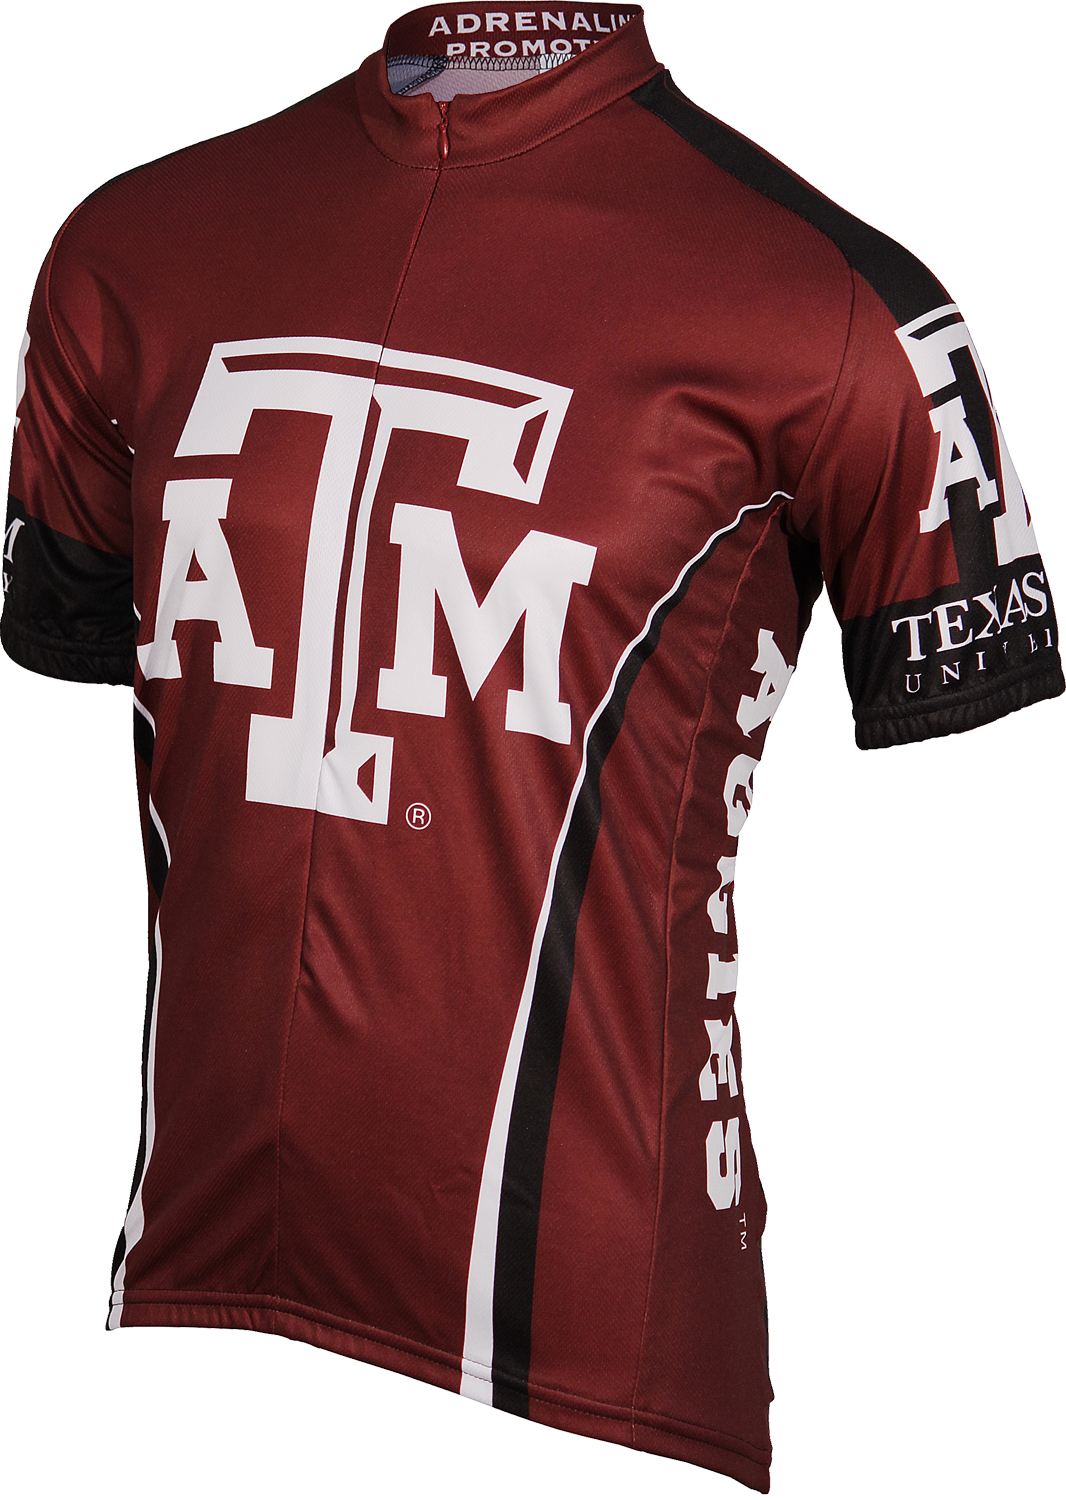 Texas A&M Aggies Cycling Jersey